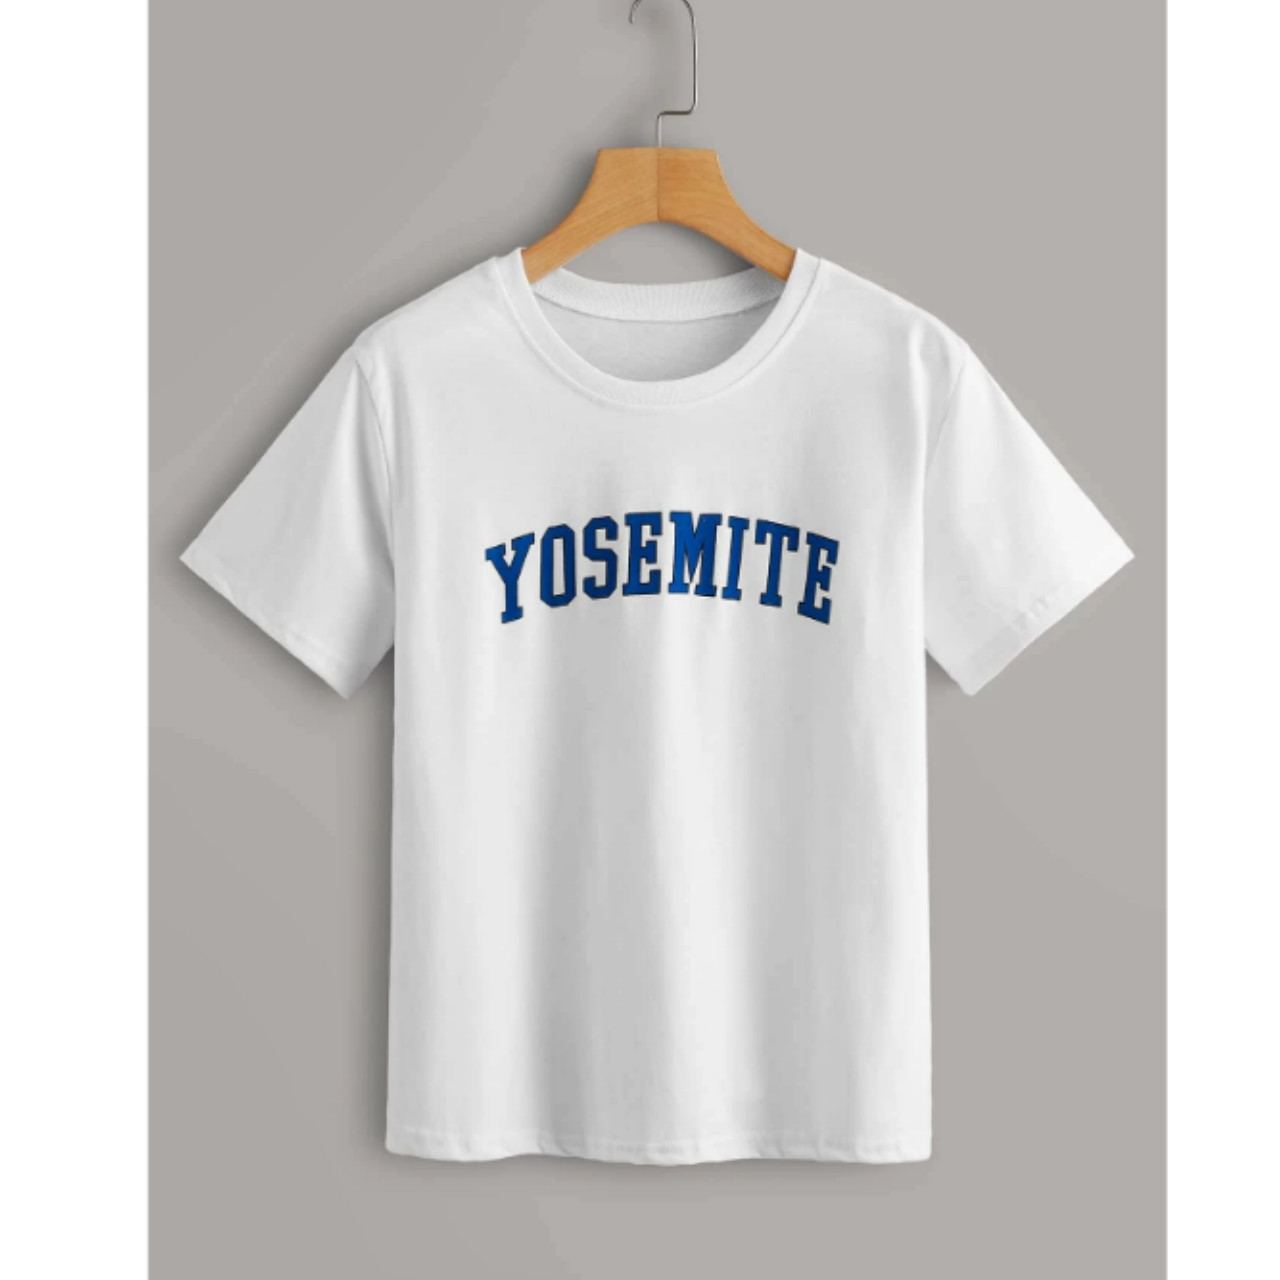 Letter graphic white tee s